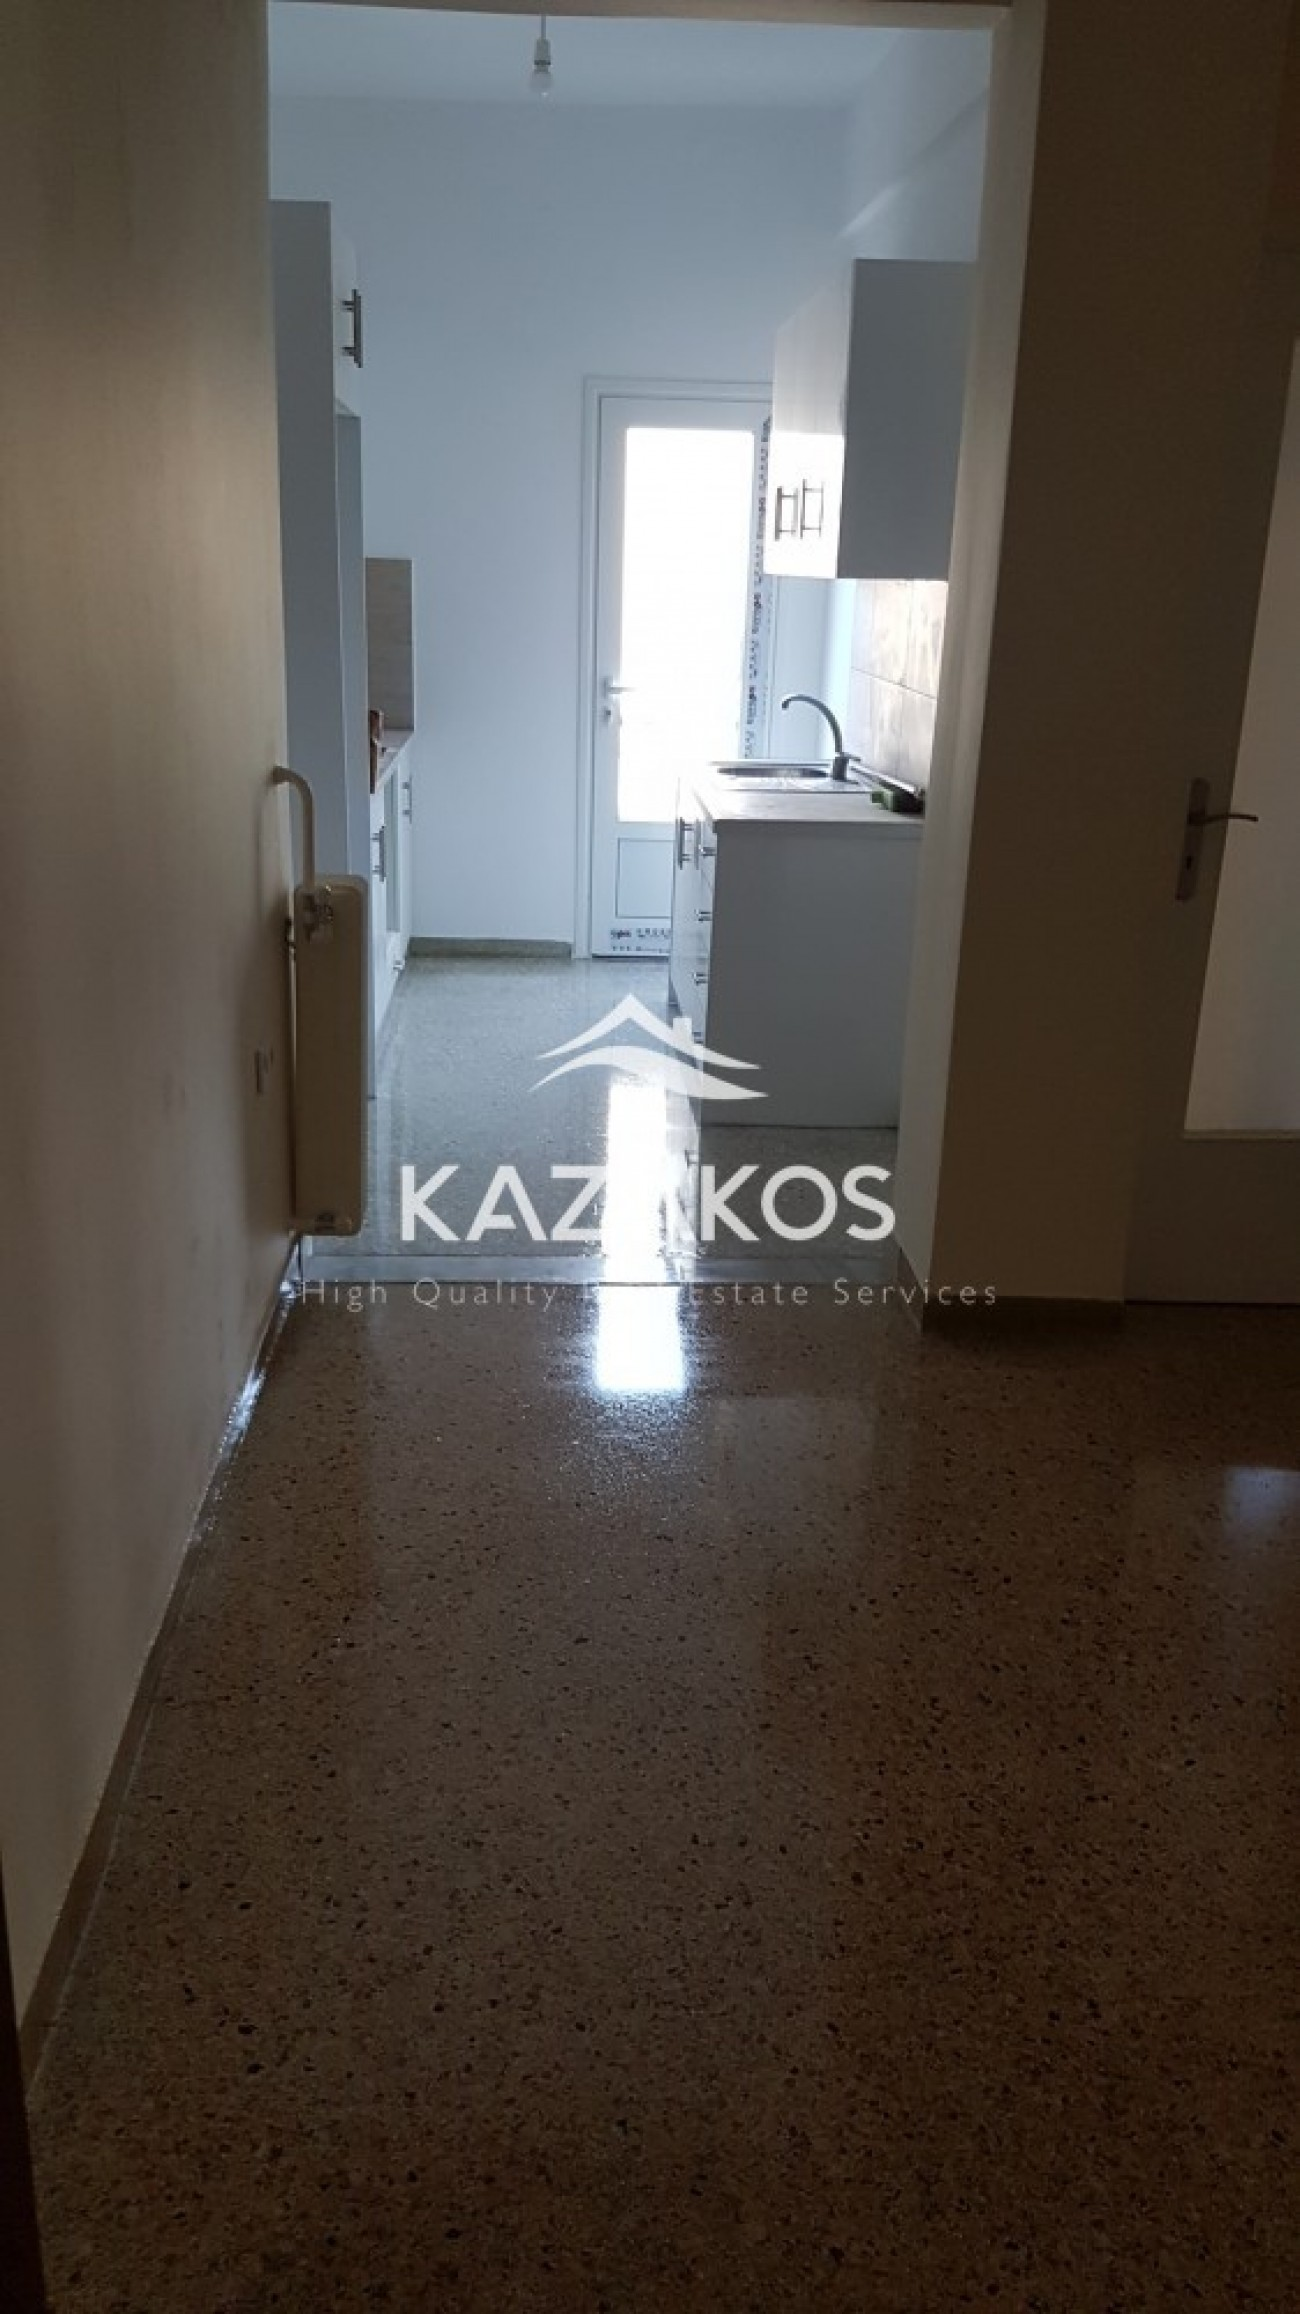 Apartment for Rent in Ampelokipoi, Athens City Center, Greece